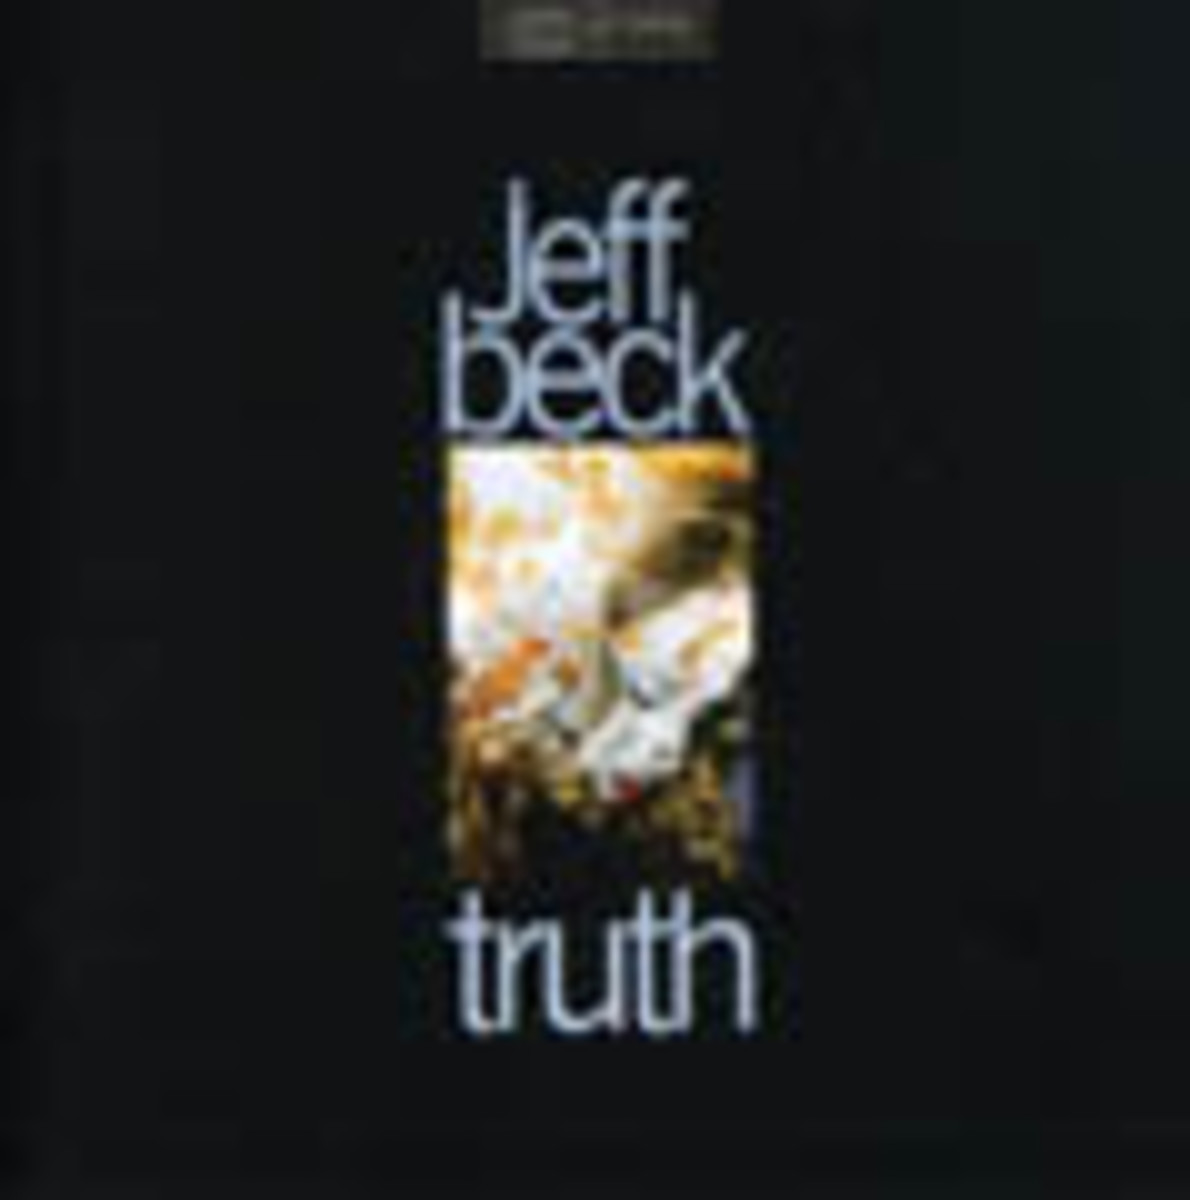 Jeff Beck Truth